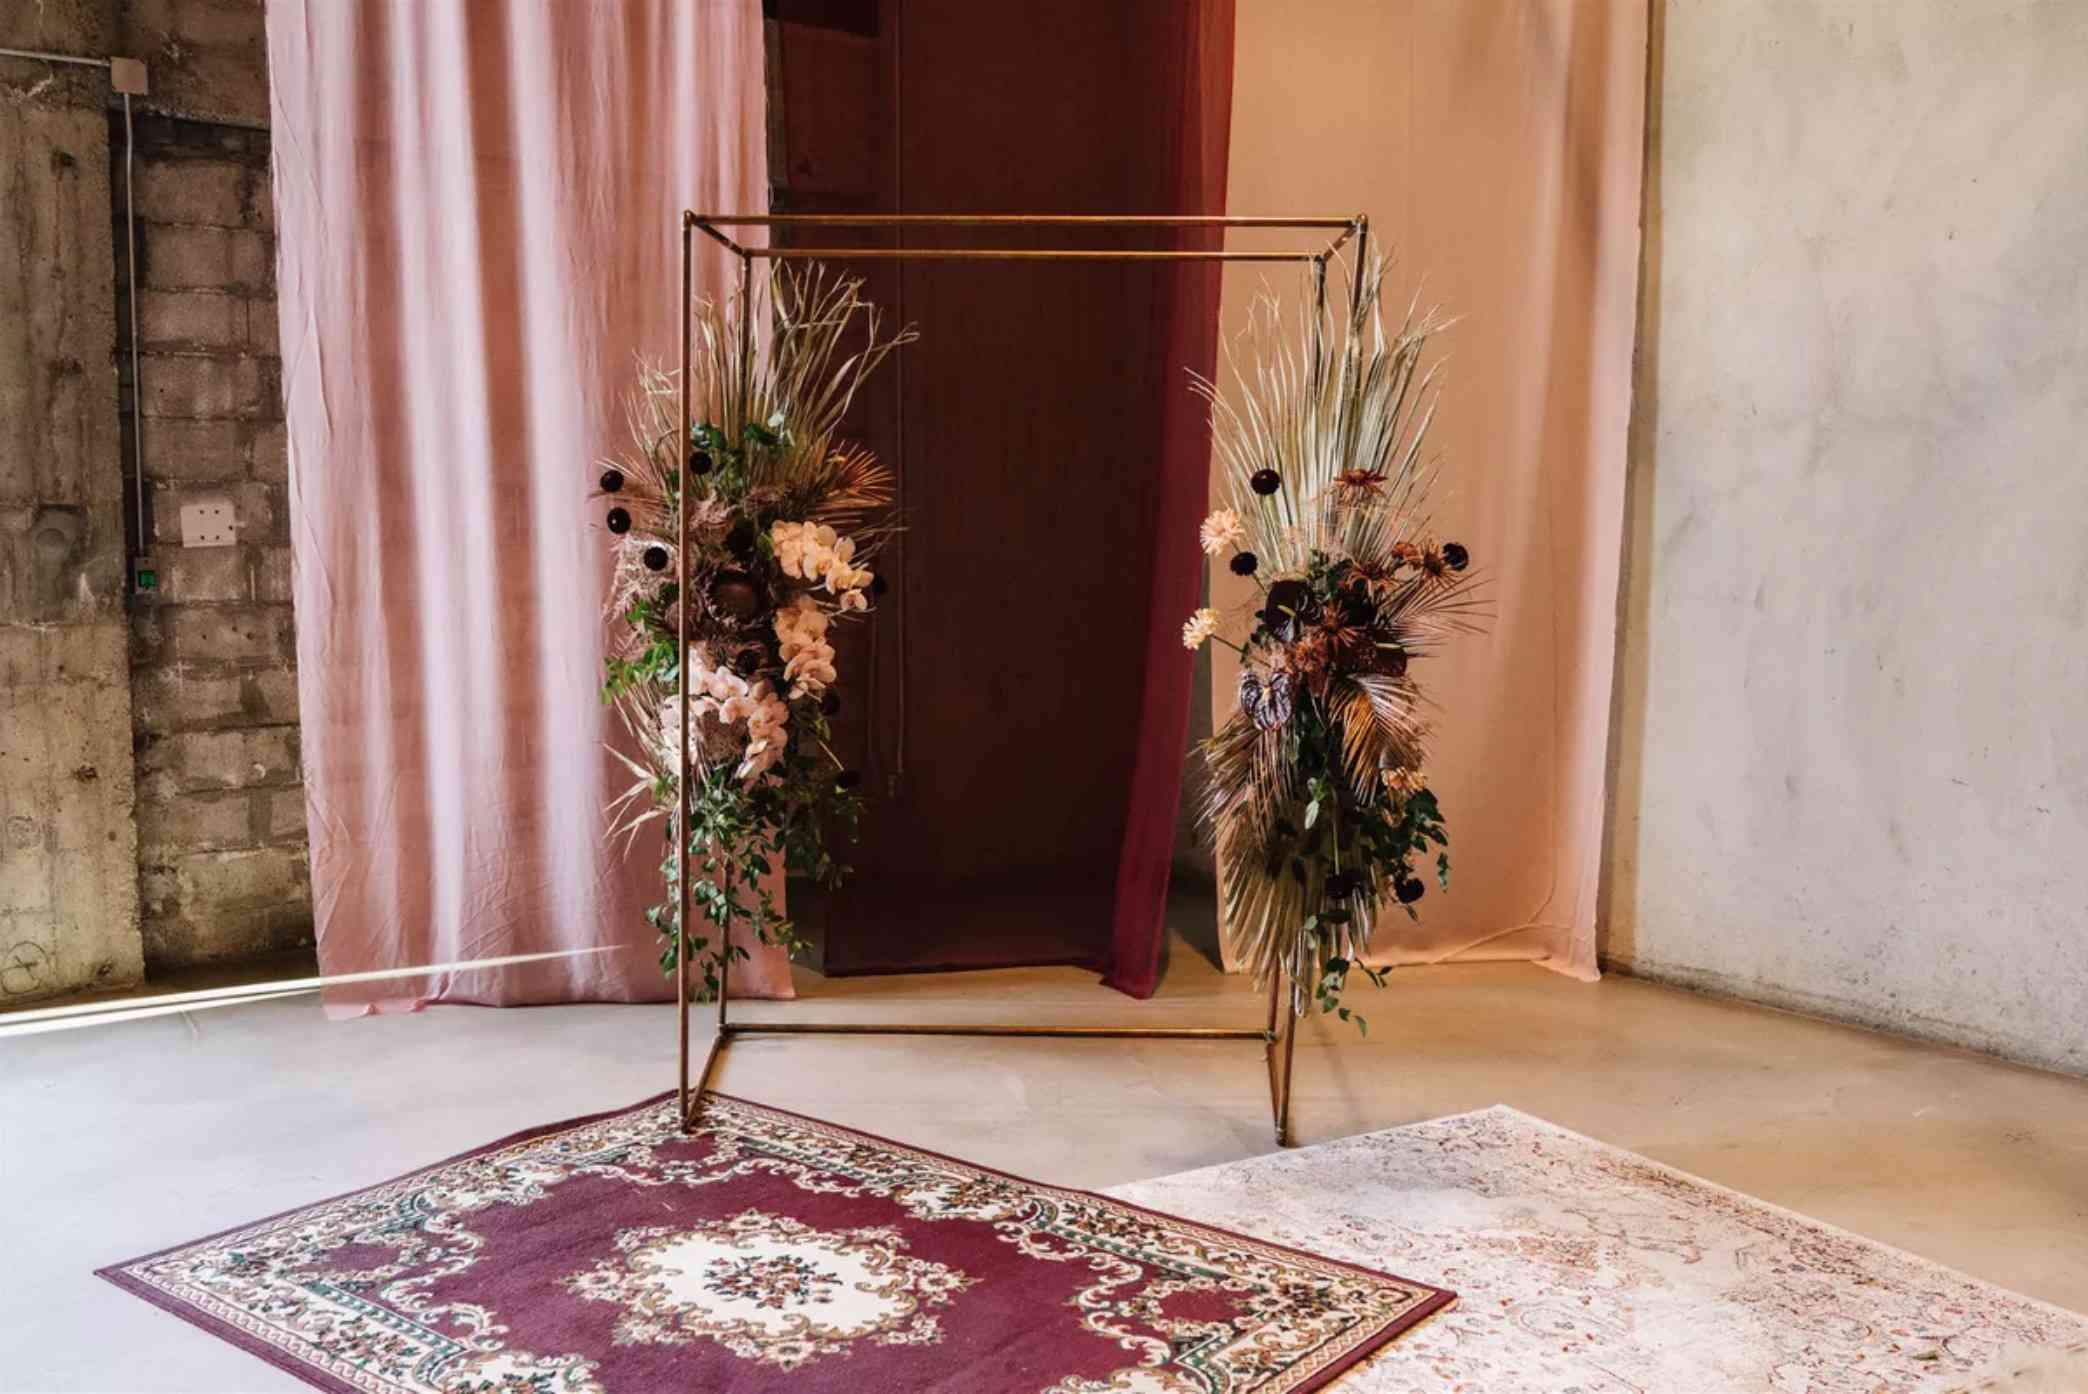 A four-post copper wedding arch accented by warm-toned seasonal flowers and dried palm leaves